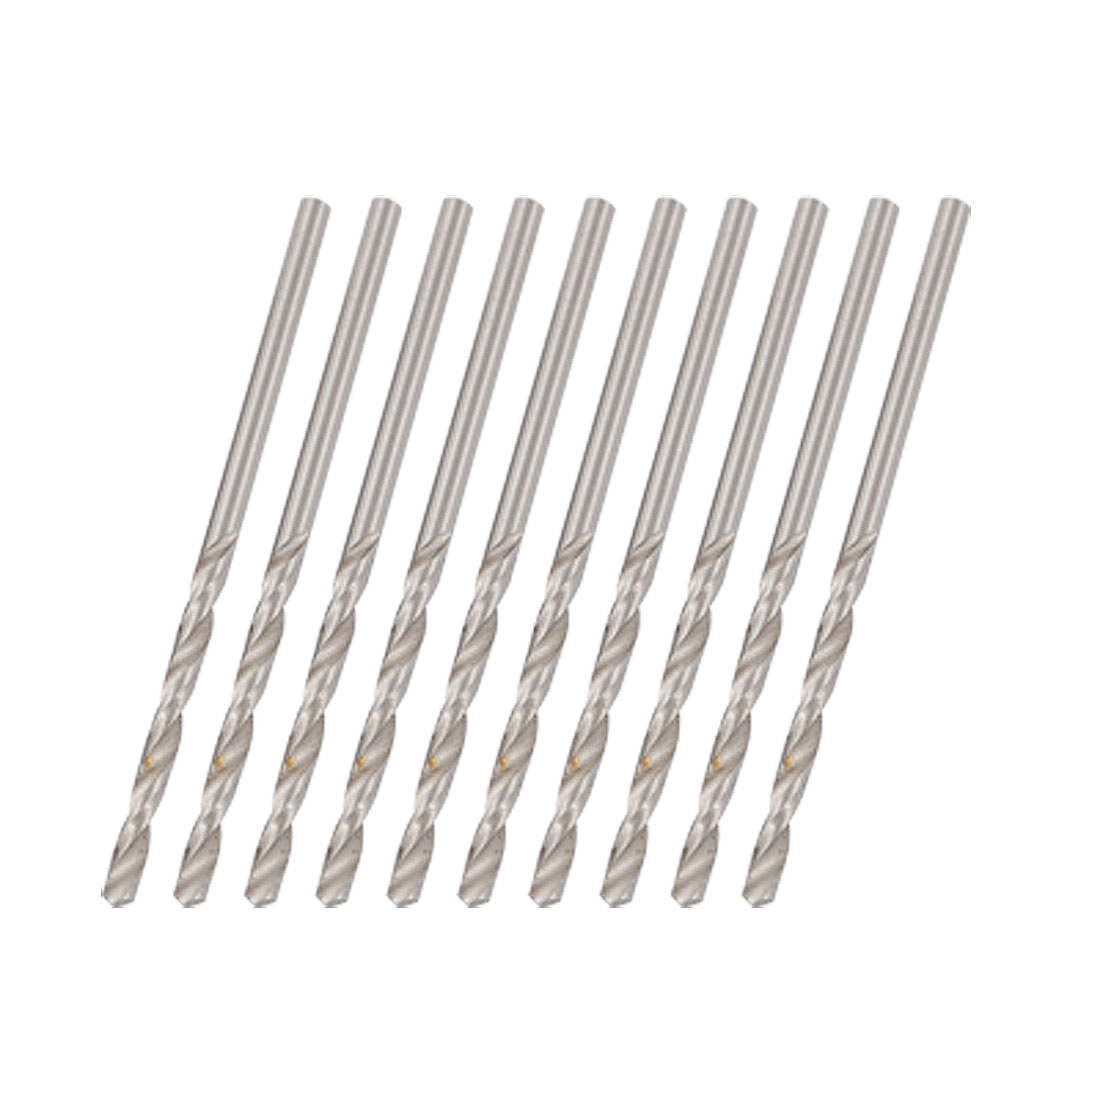 2mm Twist Drill Bits Metric 2.0mm 10 Pieces 17mm Long